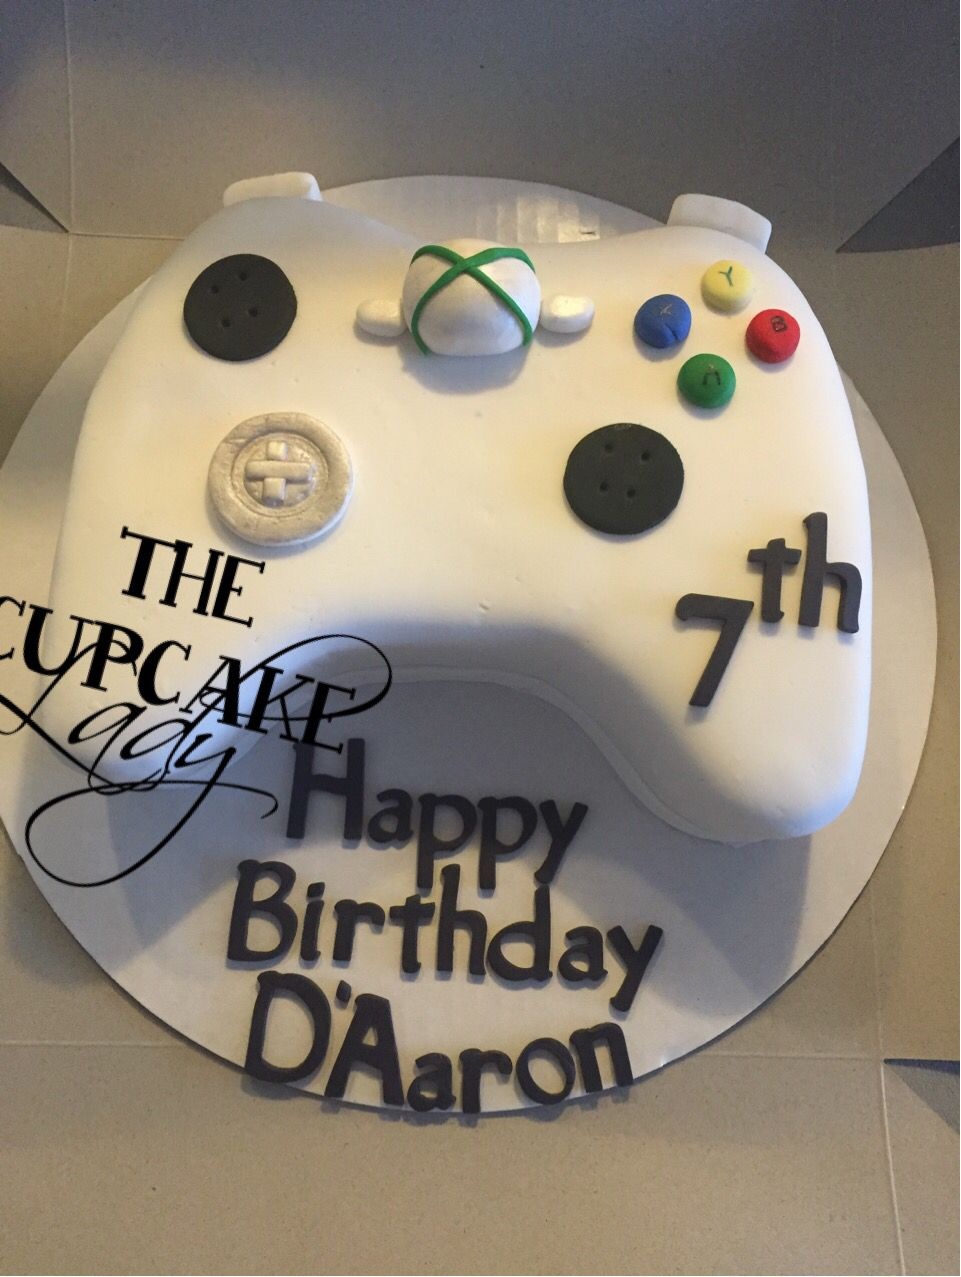 Xbox One Controller Cake Wiring Diagrams Structured Marshall39s Inside Connections Inc Creations Of My Very Own In 2018 Rh Pinterest Com Images Mould